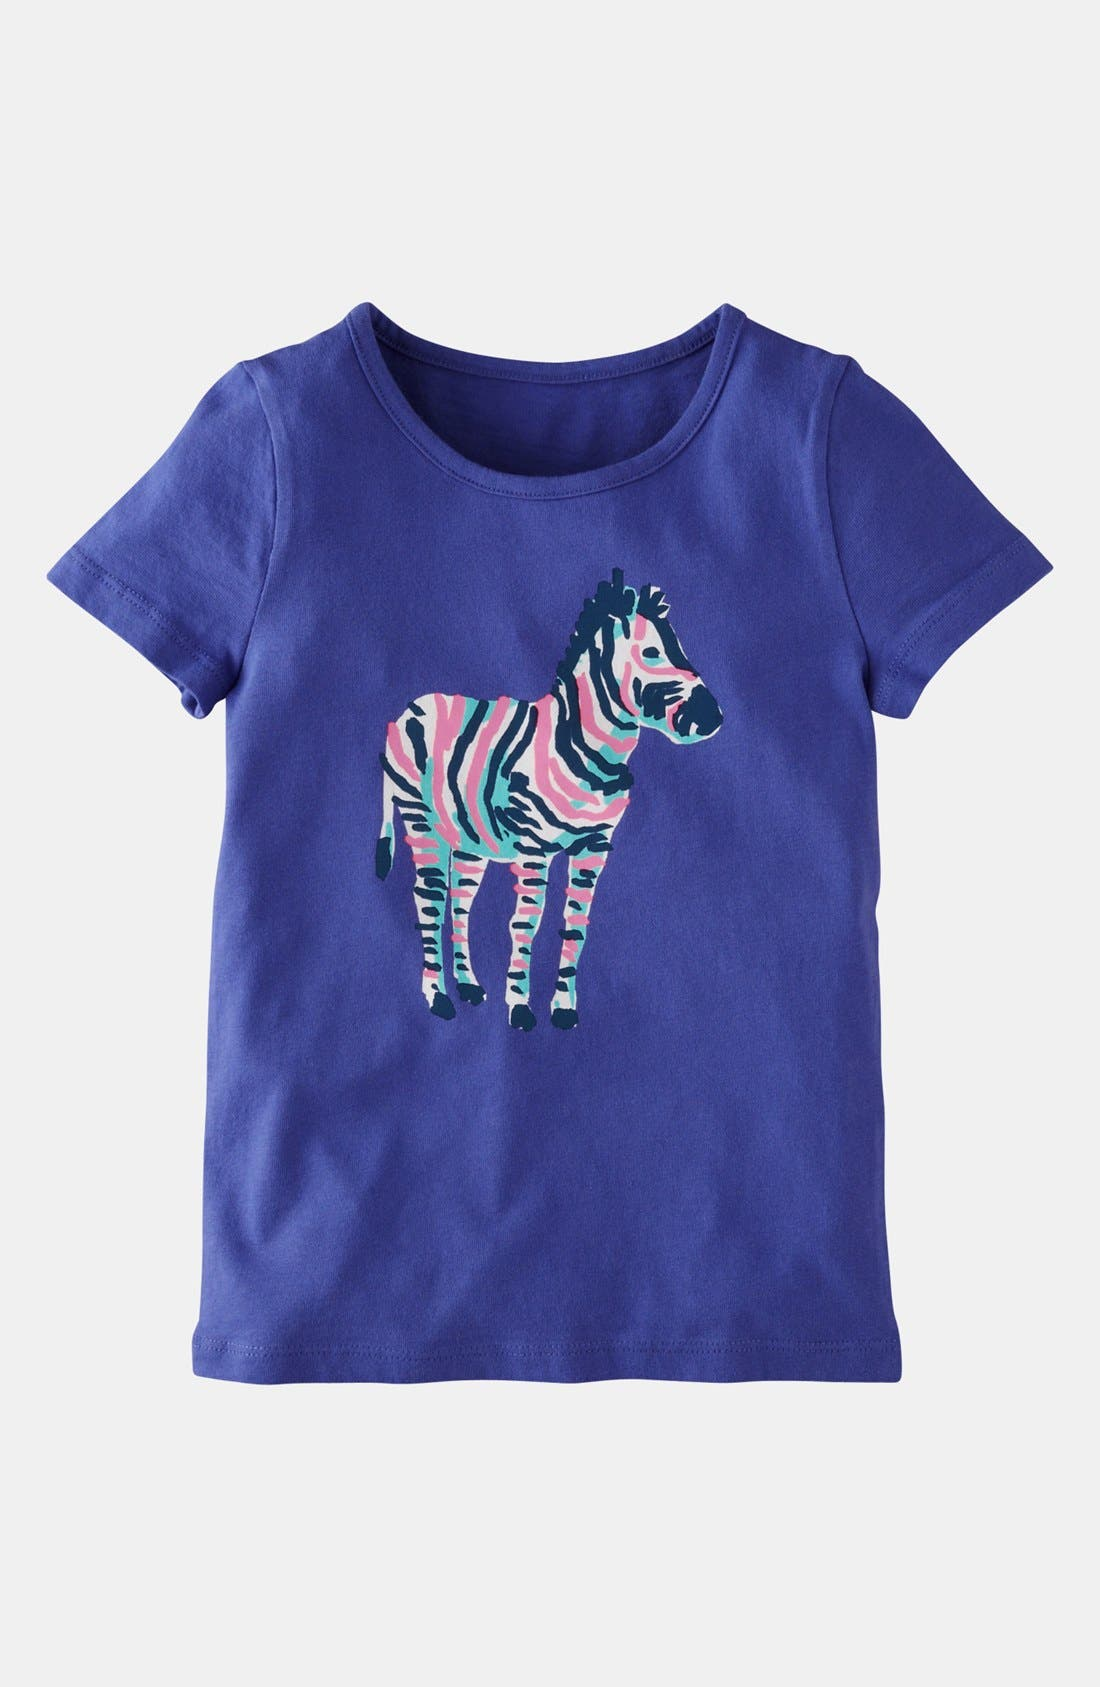 Main Image - Mini Boden 'Colorful Carnival' Tee (Little Girls & Big Girls)